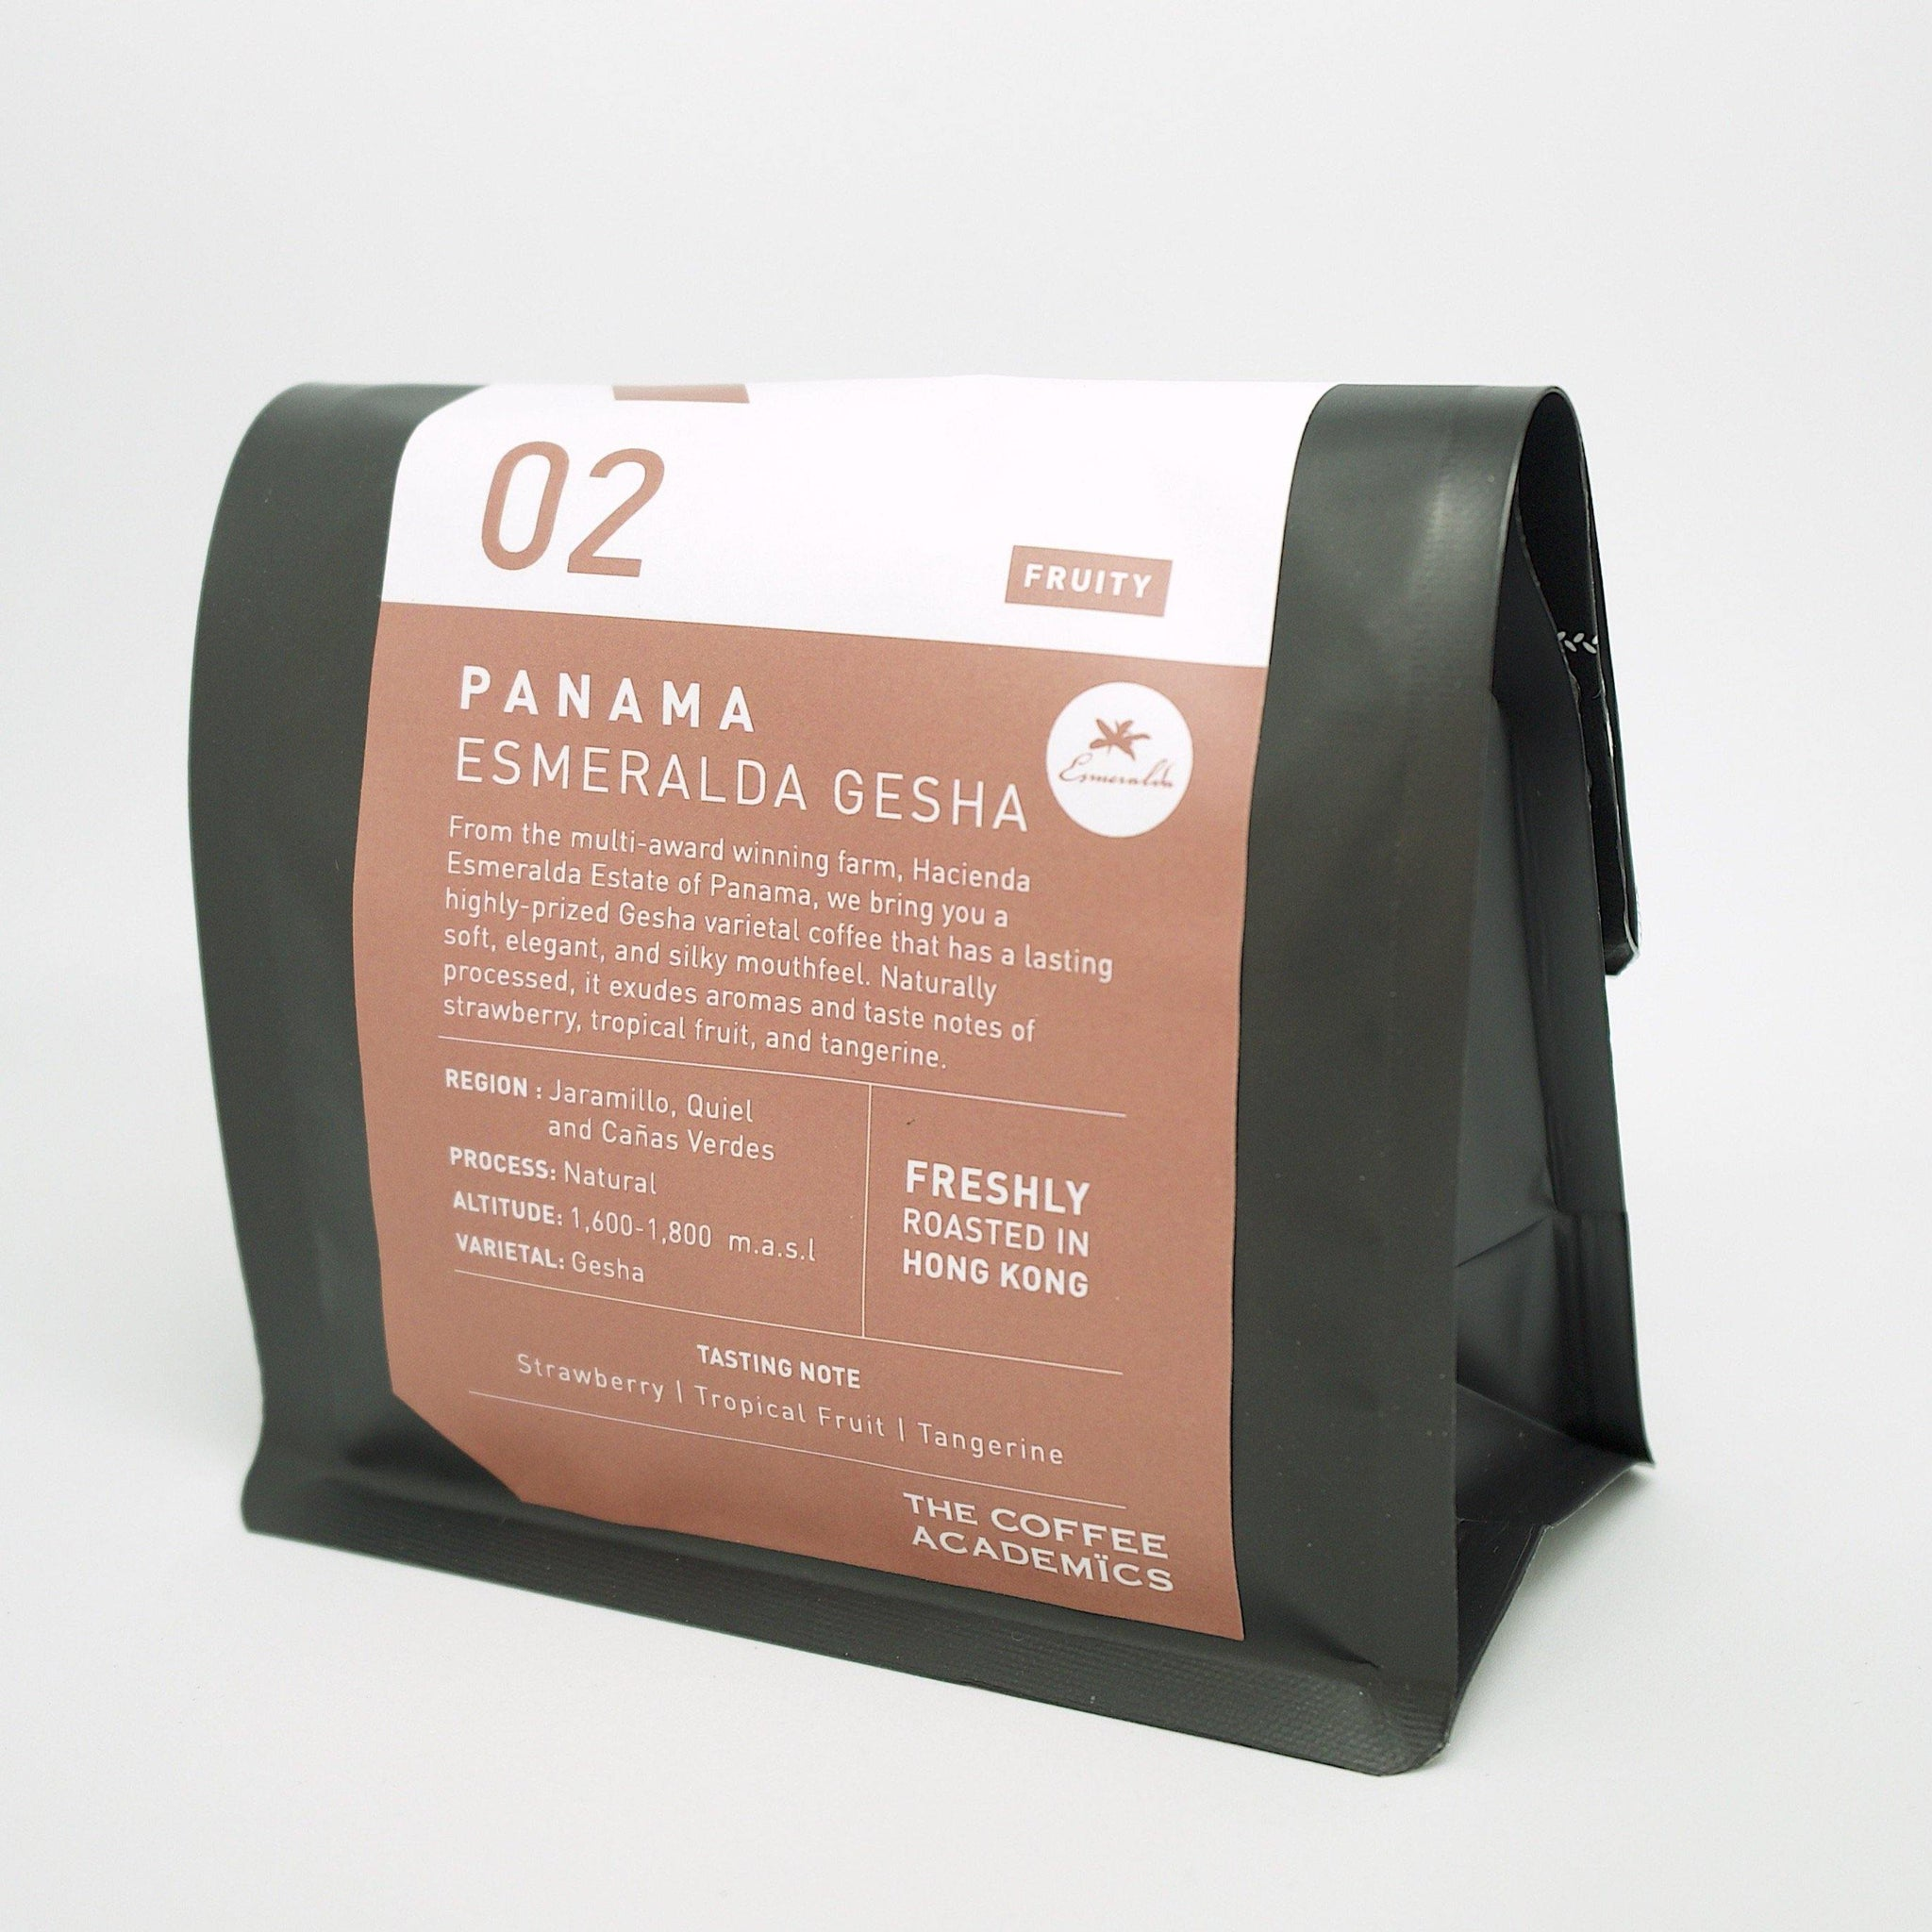 02 Panama Esmeralda Gesha Roasted Bean Natural 200g